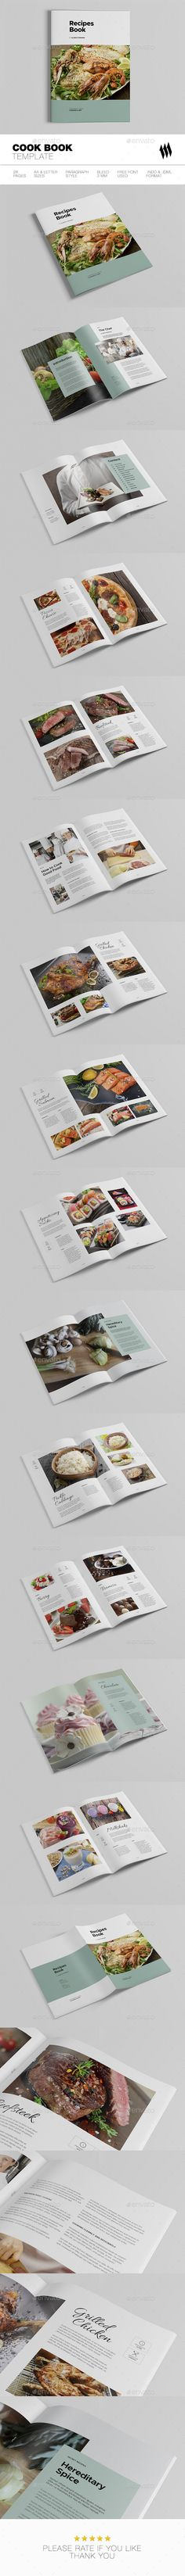 Cookbook / Recipe Book Template InDesign INDD - 28 Pages, A4 & US Letter Size